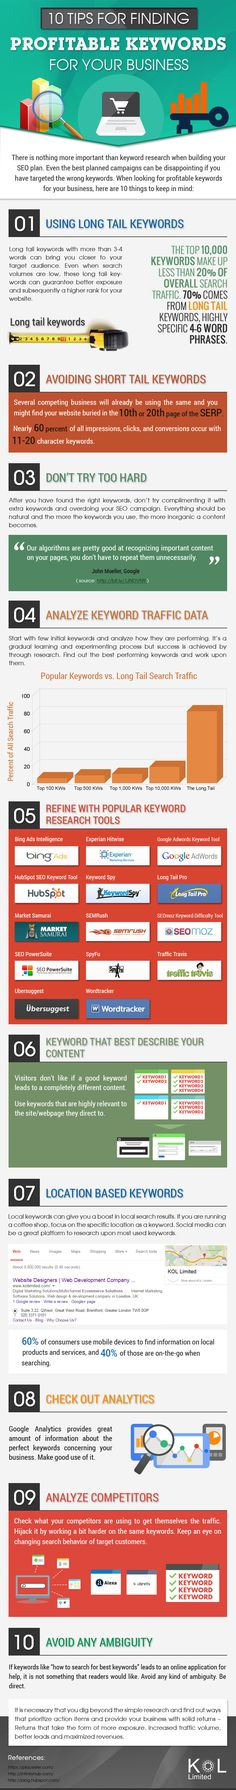 #INFOGRAPHIC: 10 Tips for Finding Profitable Keywords for Your Business